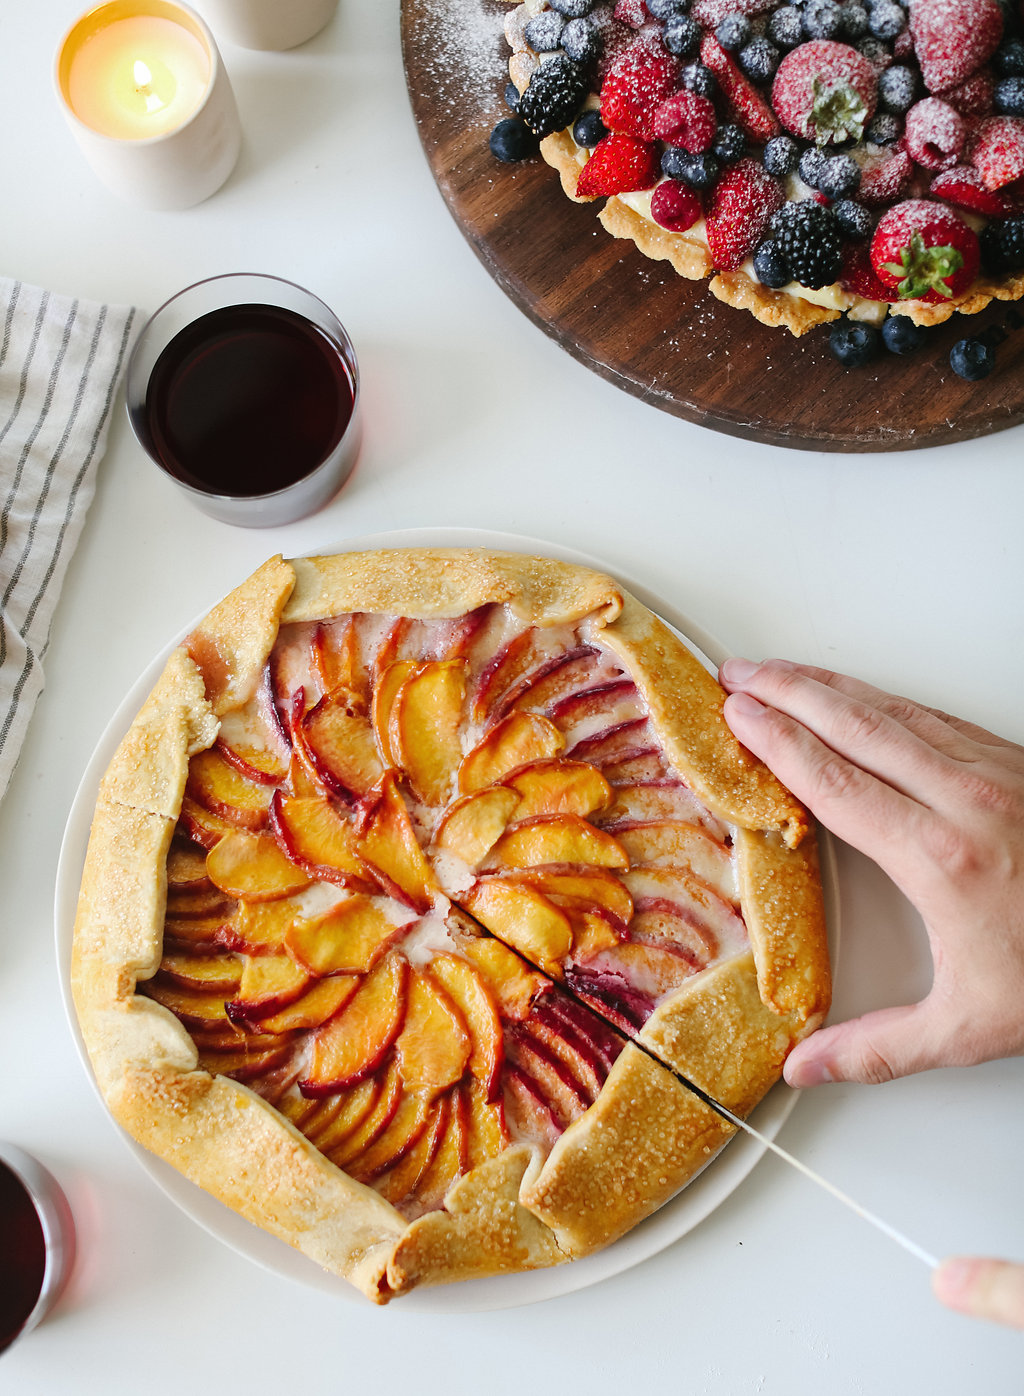 Lighter than most pies (thanks to a thinner crust), fun to make, and packed full of your favorite fruit — the galette has quickly won it's way into our hearts, potlucks, and even an afternoon treat. #recipe #dessert